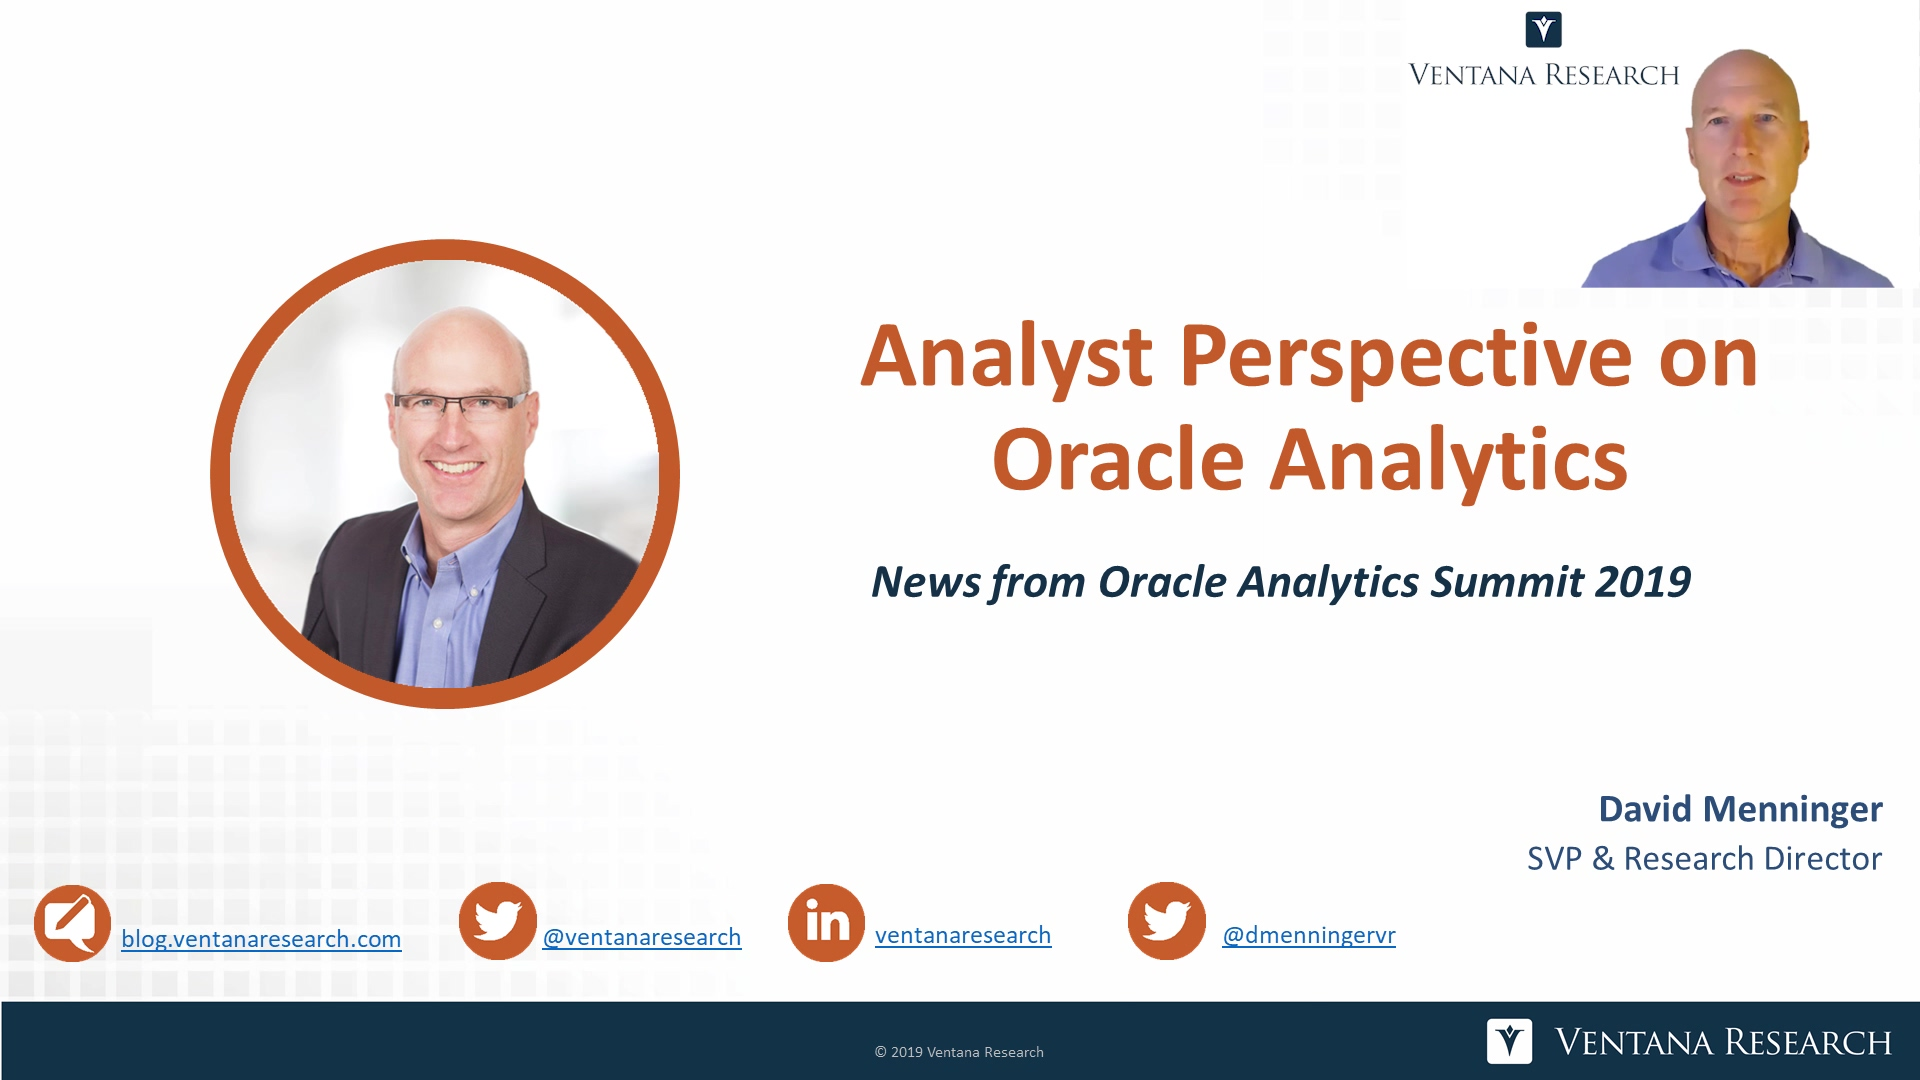 Ventana_Research-David_Menninger-Oracle_Analytics_Summit_2019-Analyst_Perspective